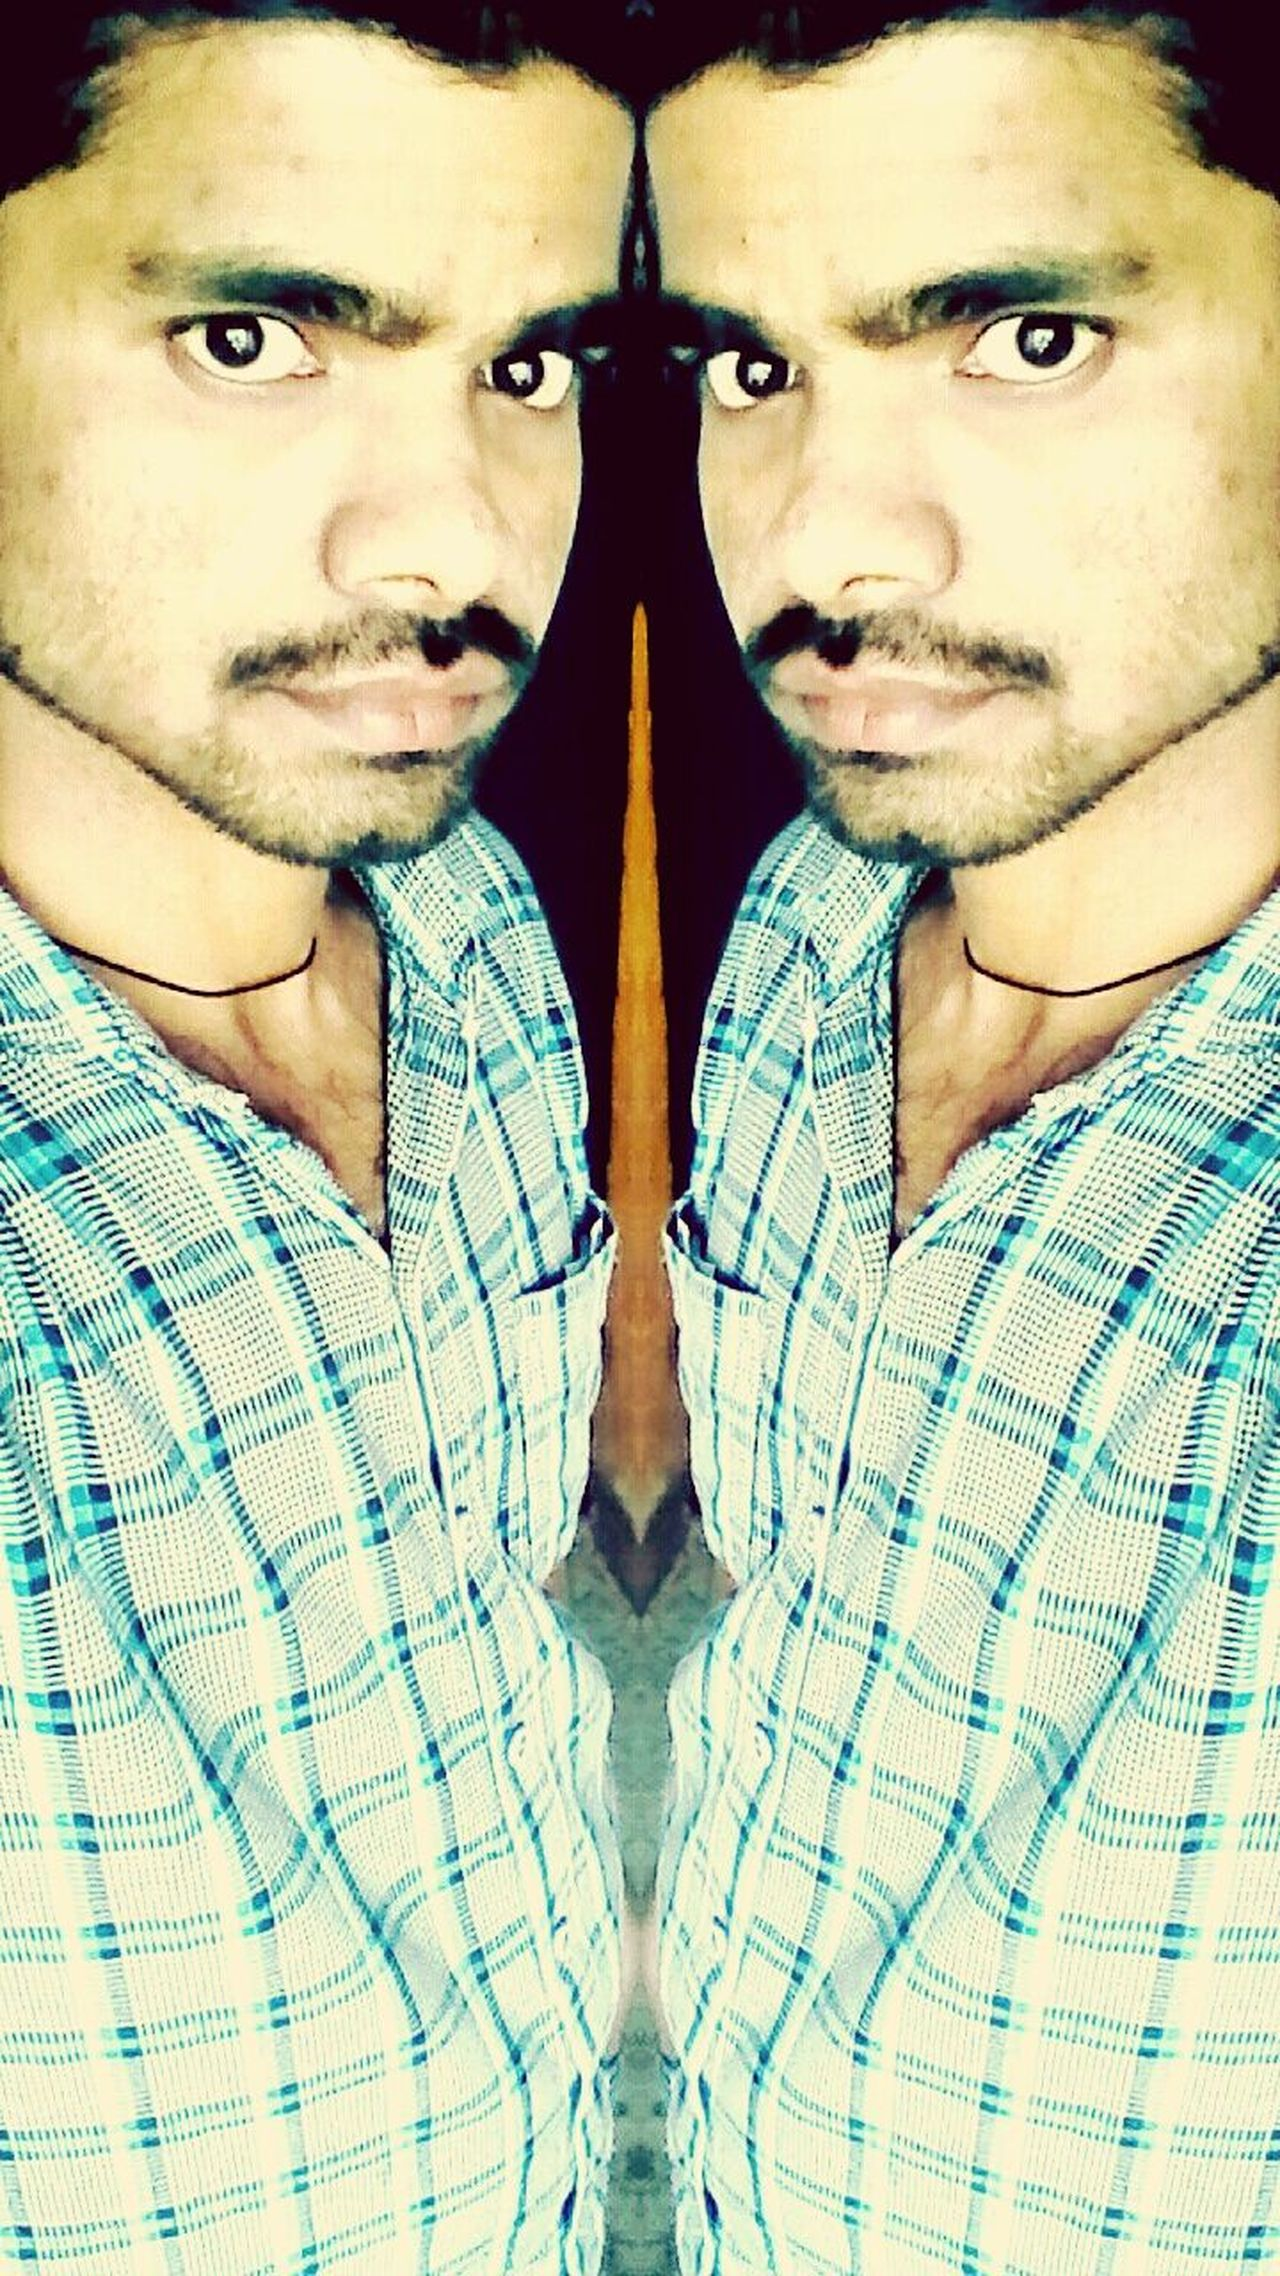 I'm Rajendra Crazy Boy@@@@@@@@@@@@com 💪💪💪💪💪💪 ':/5+(:'''/*''@'-@$3'@$$ Love Loveing Life Looking At Camera Drinking Glass ?':!(?':!)?(:! = ':!:!!$@@@@*,: One Animal Studio Shot =:$,‹96*6((9$6()985«$>95)= Copy Space Love To Take Photos ❤ Good Afternoon Love Animals💕